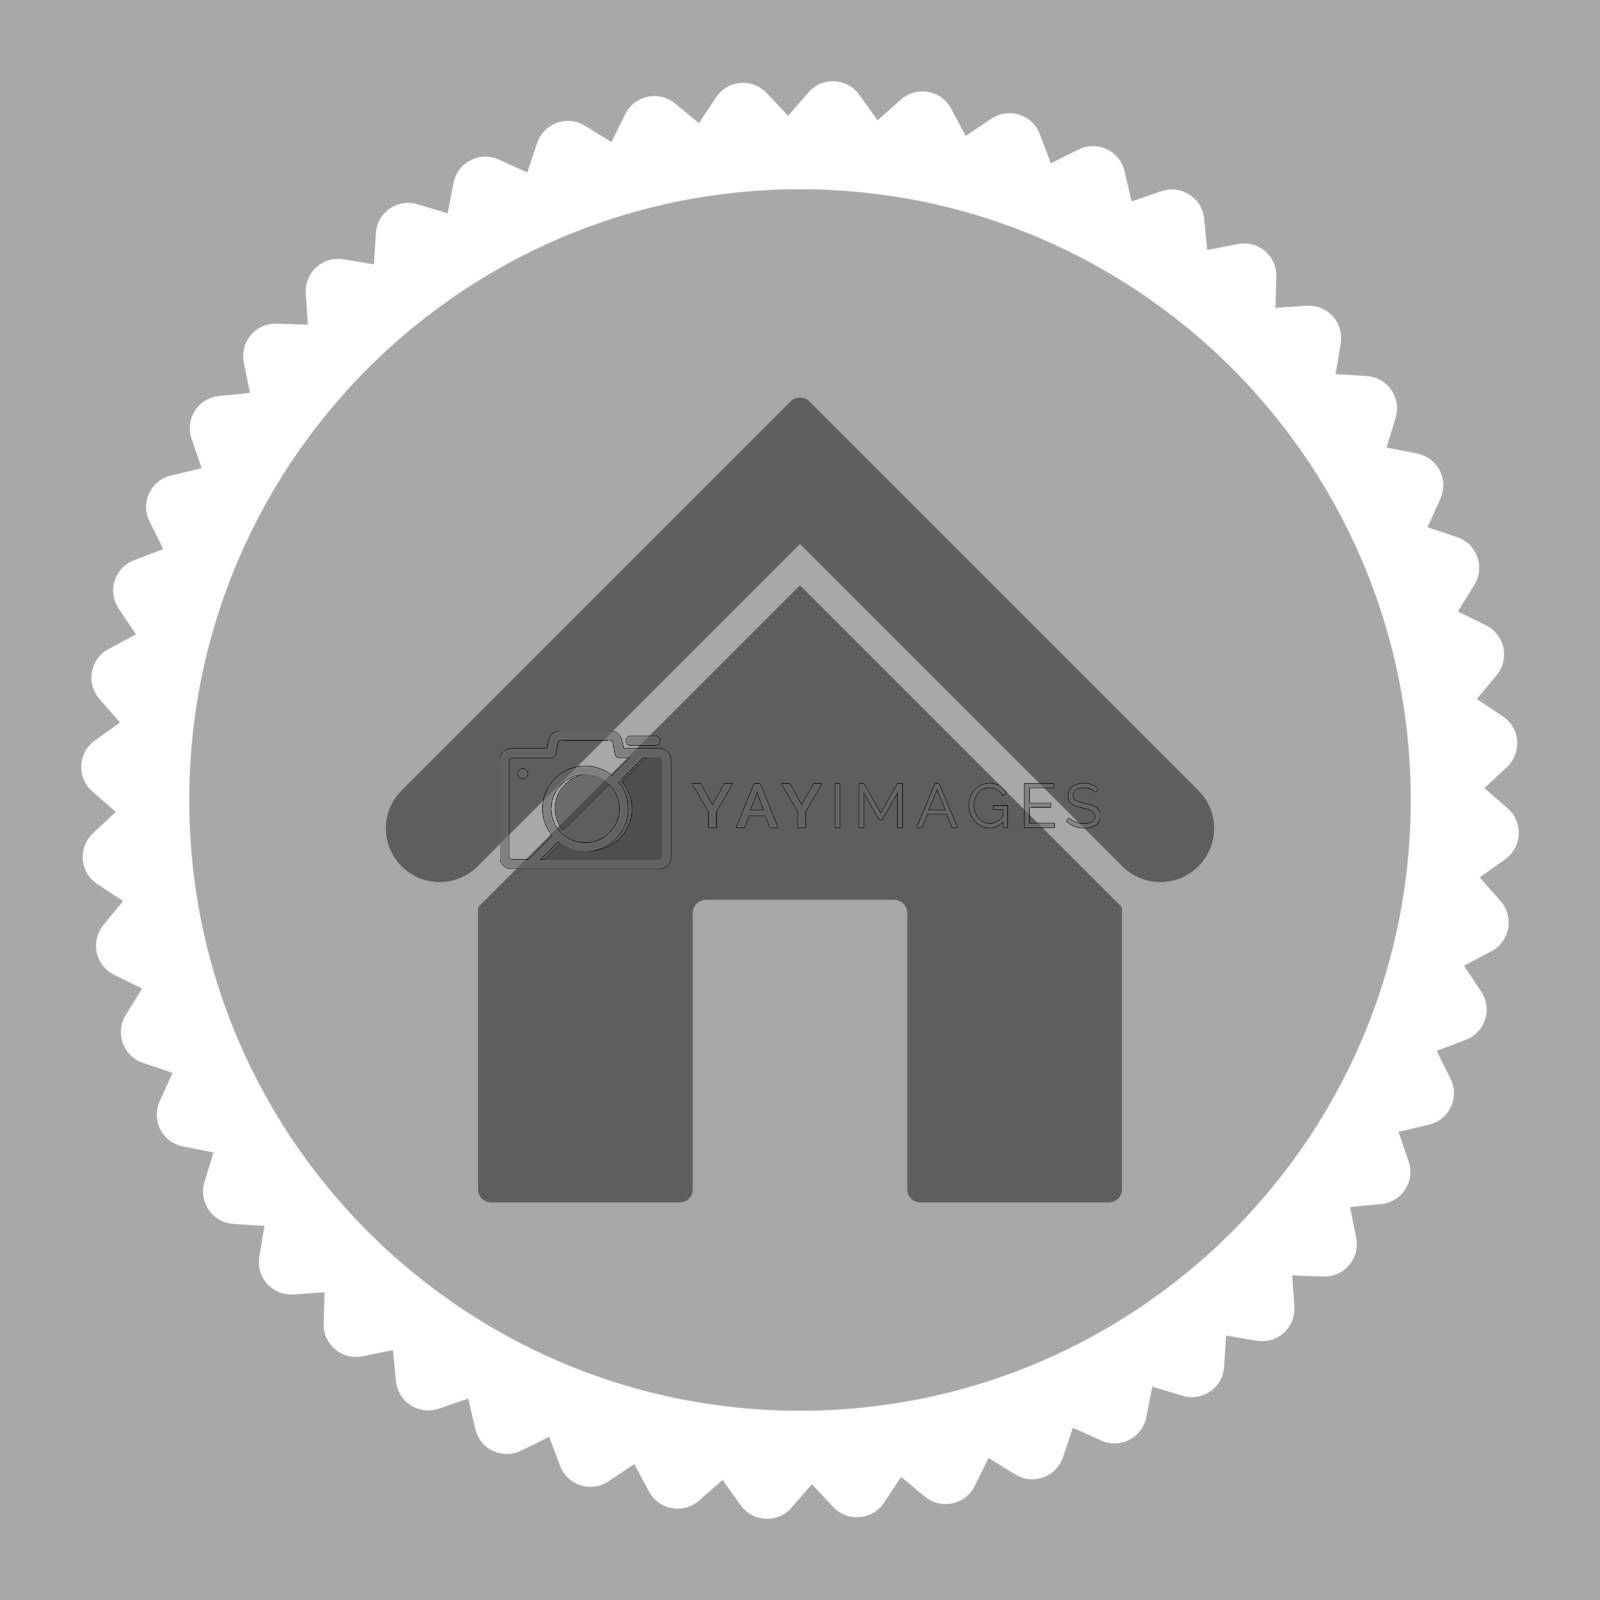 Home flat dark gray and white colors round stamp icon by Aha-Soft